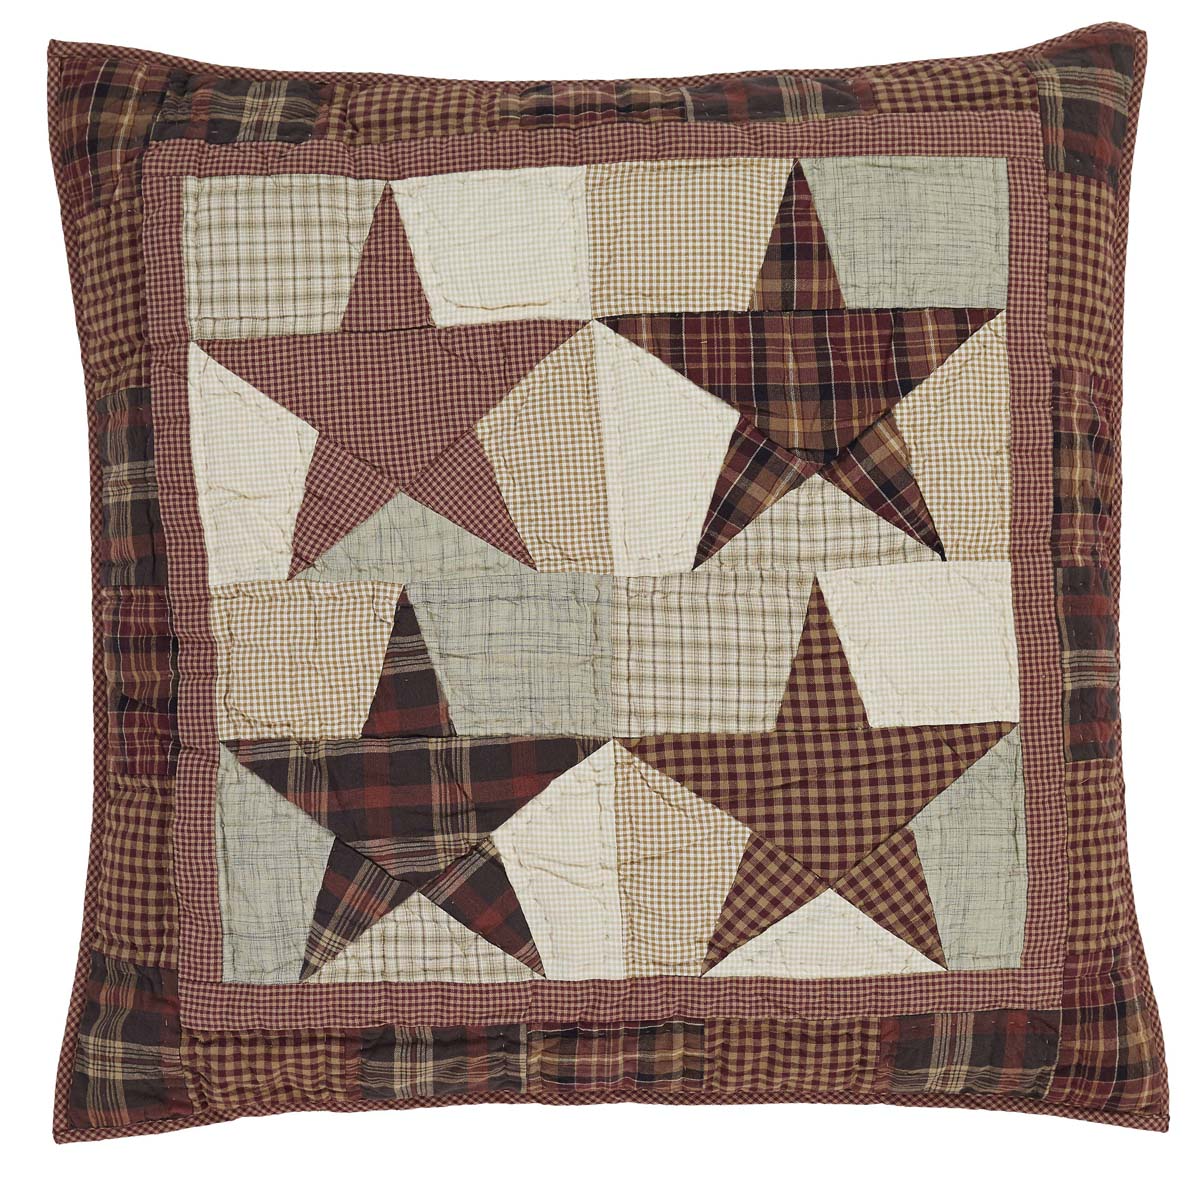 Abilene star quilted d7065839 019f 4b98 8bab 545dc7a9c0d4